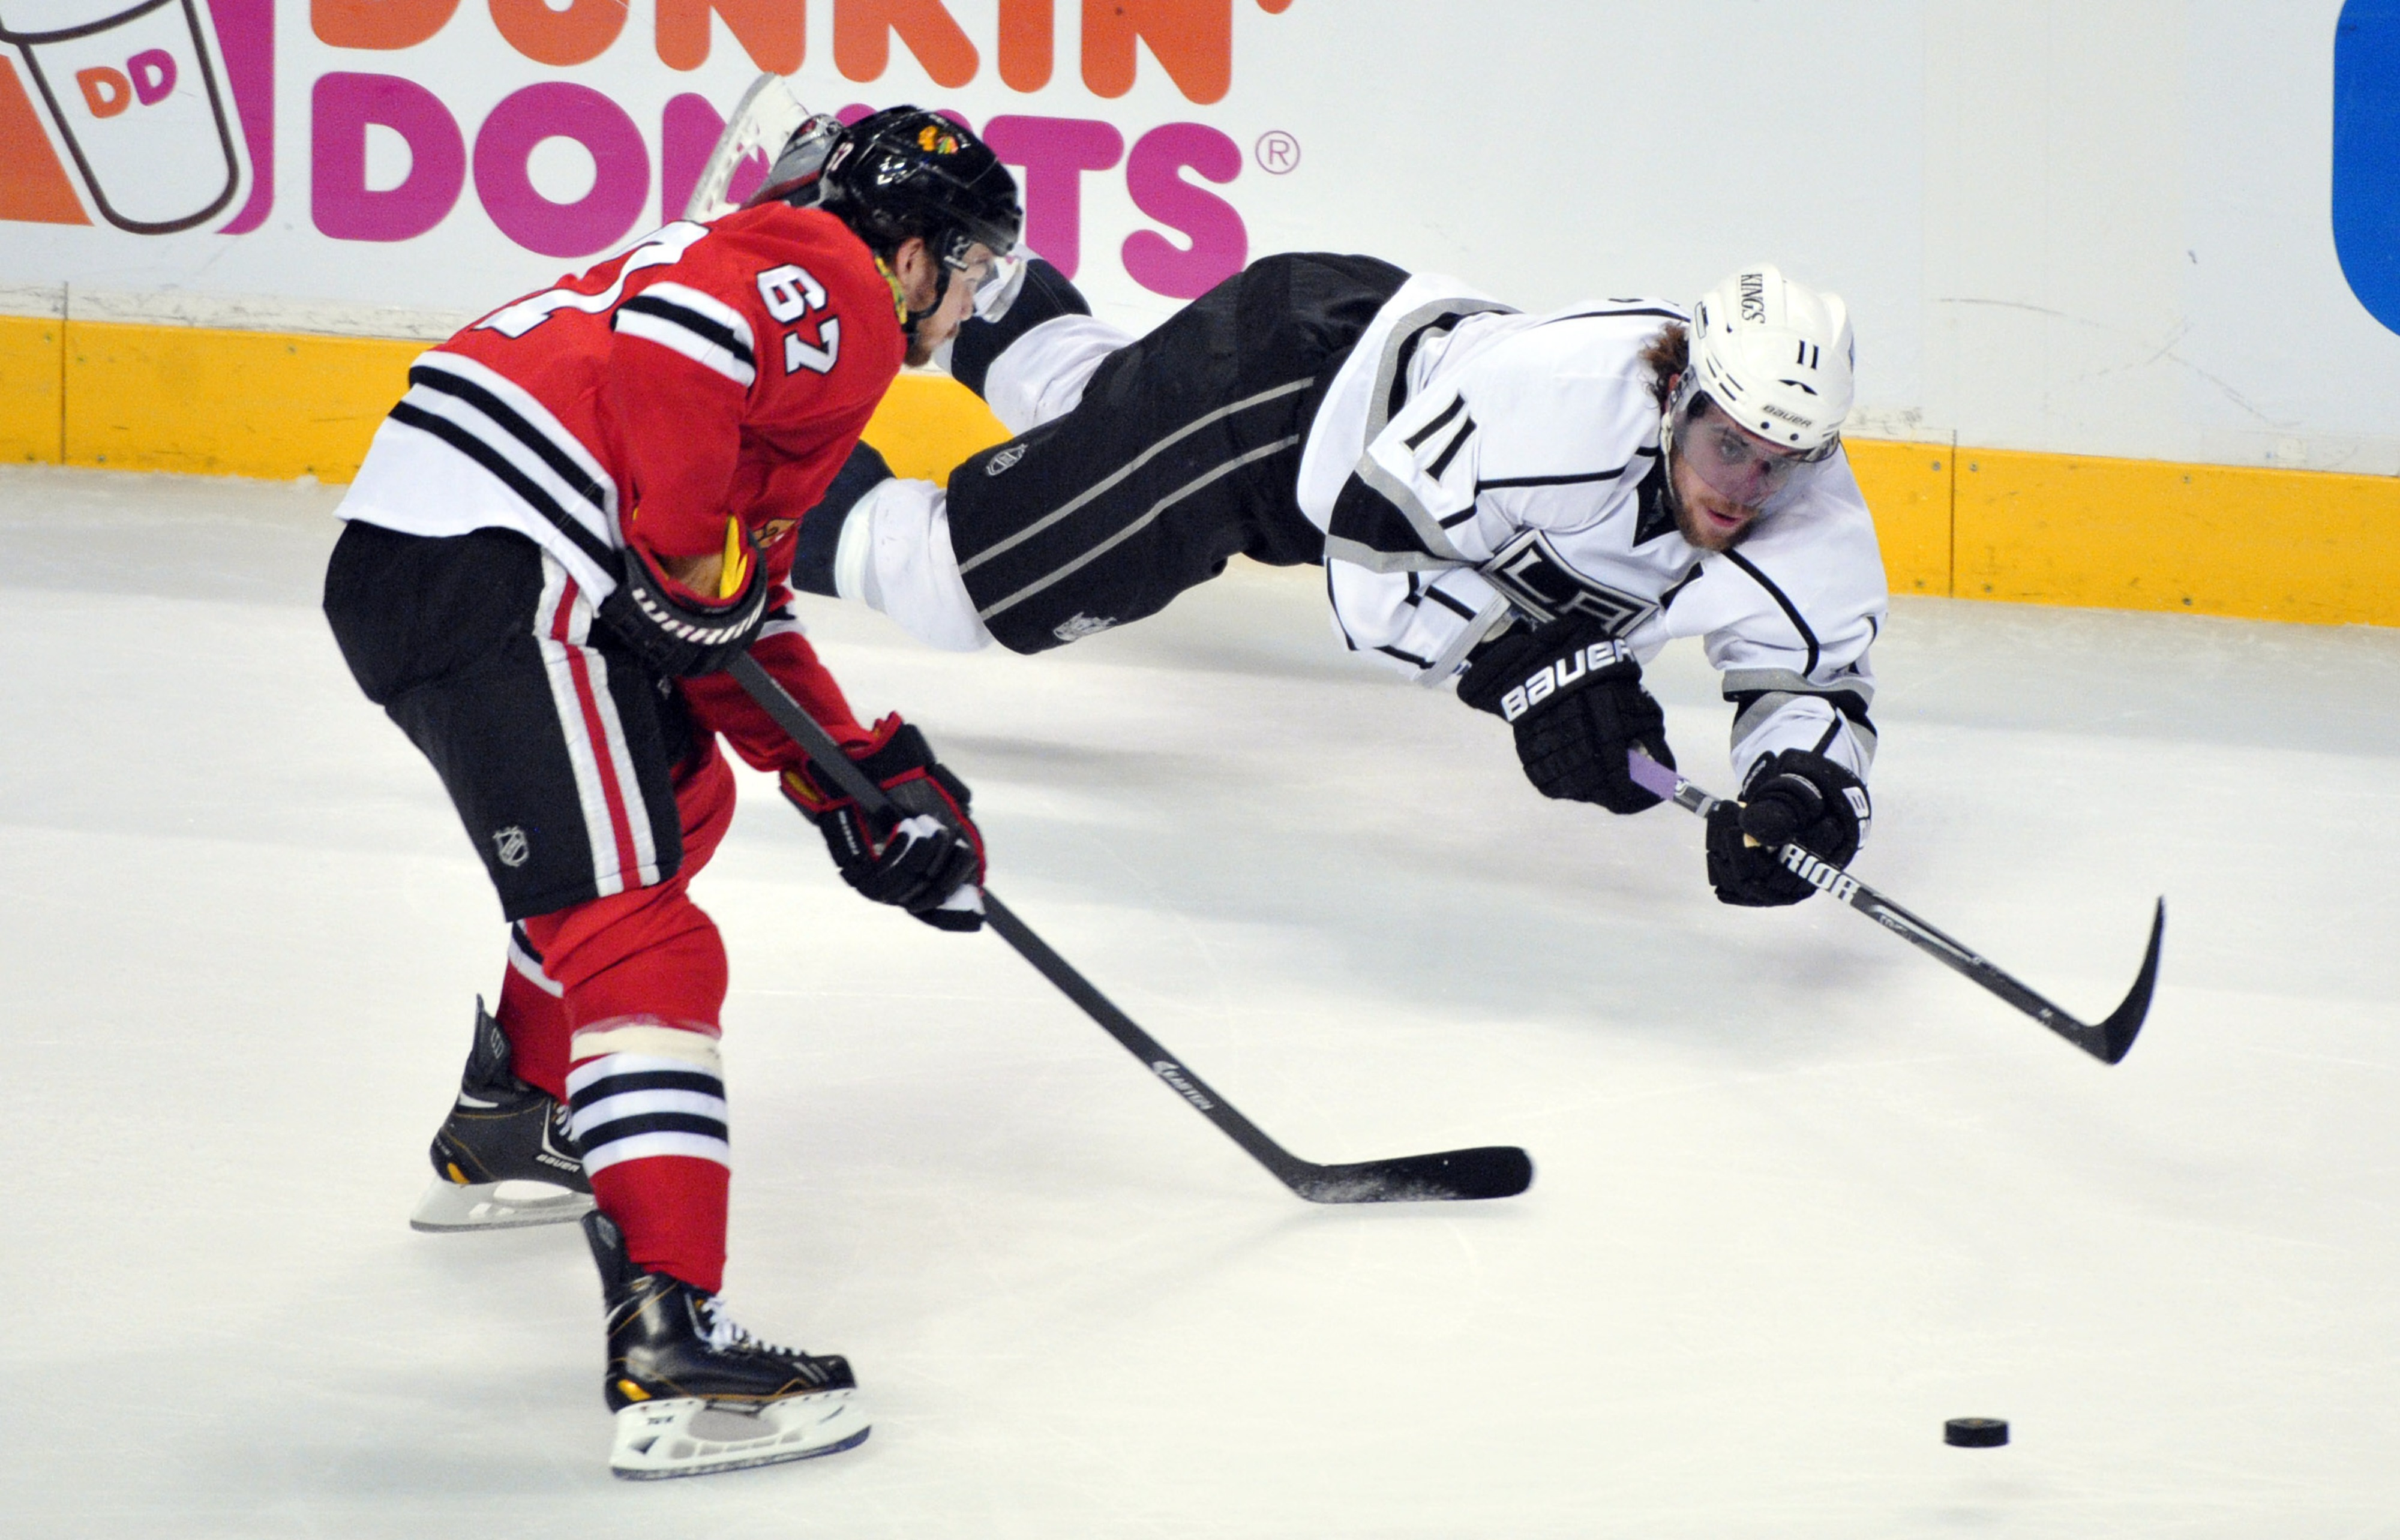 Kopitar's struggles were well-documented, but everyone has work to do.